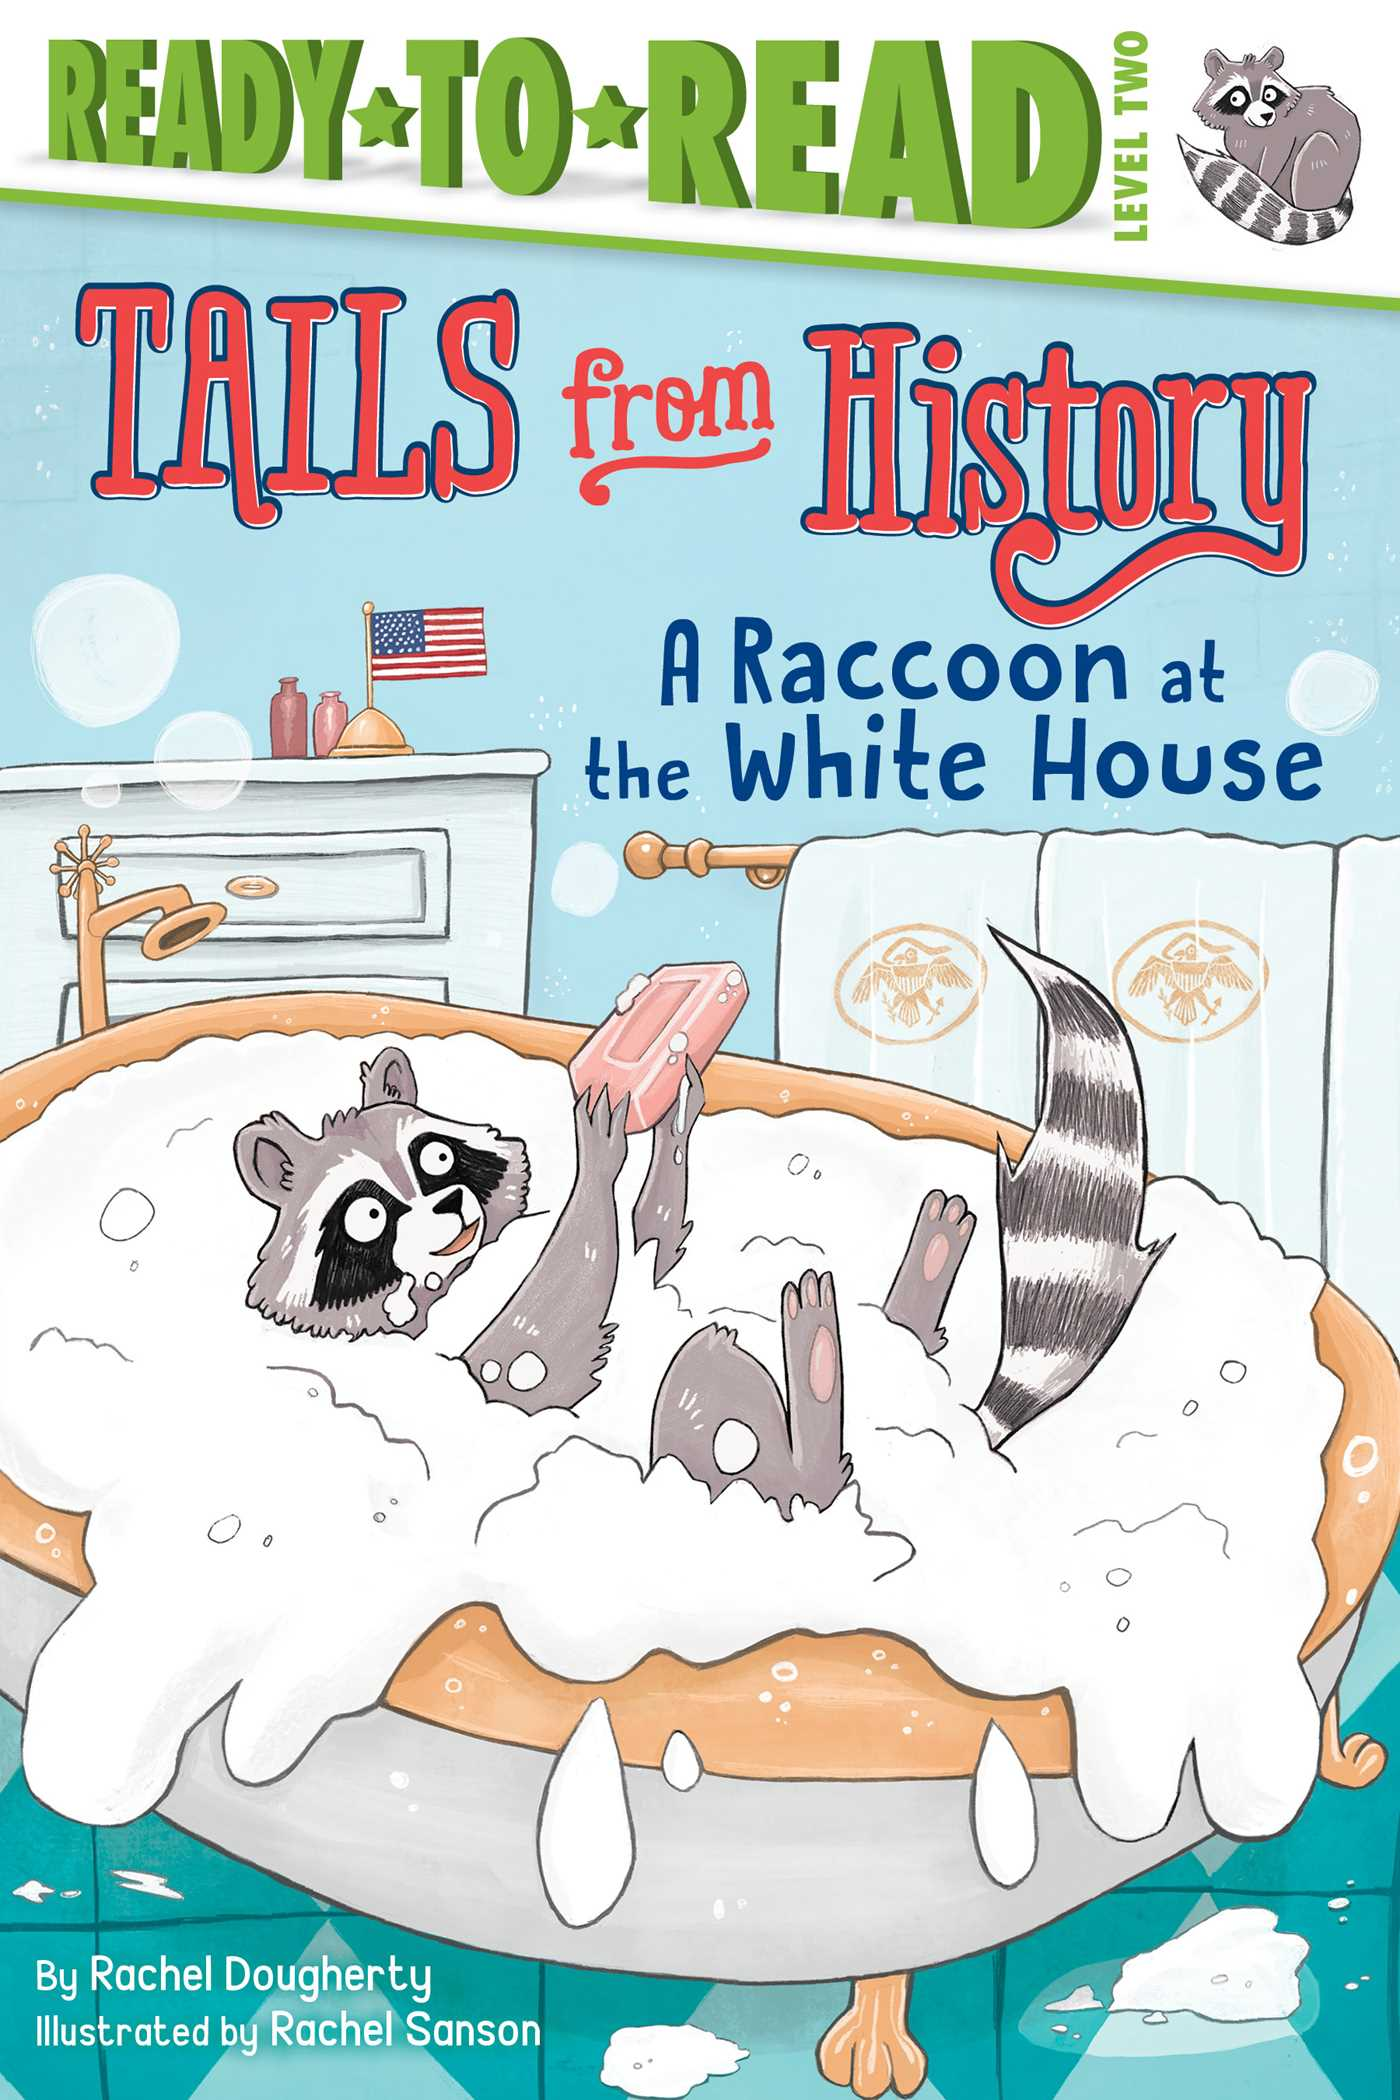 A raccoon at the white house 9781534405417 hr